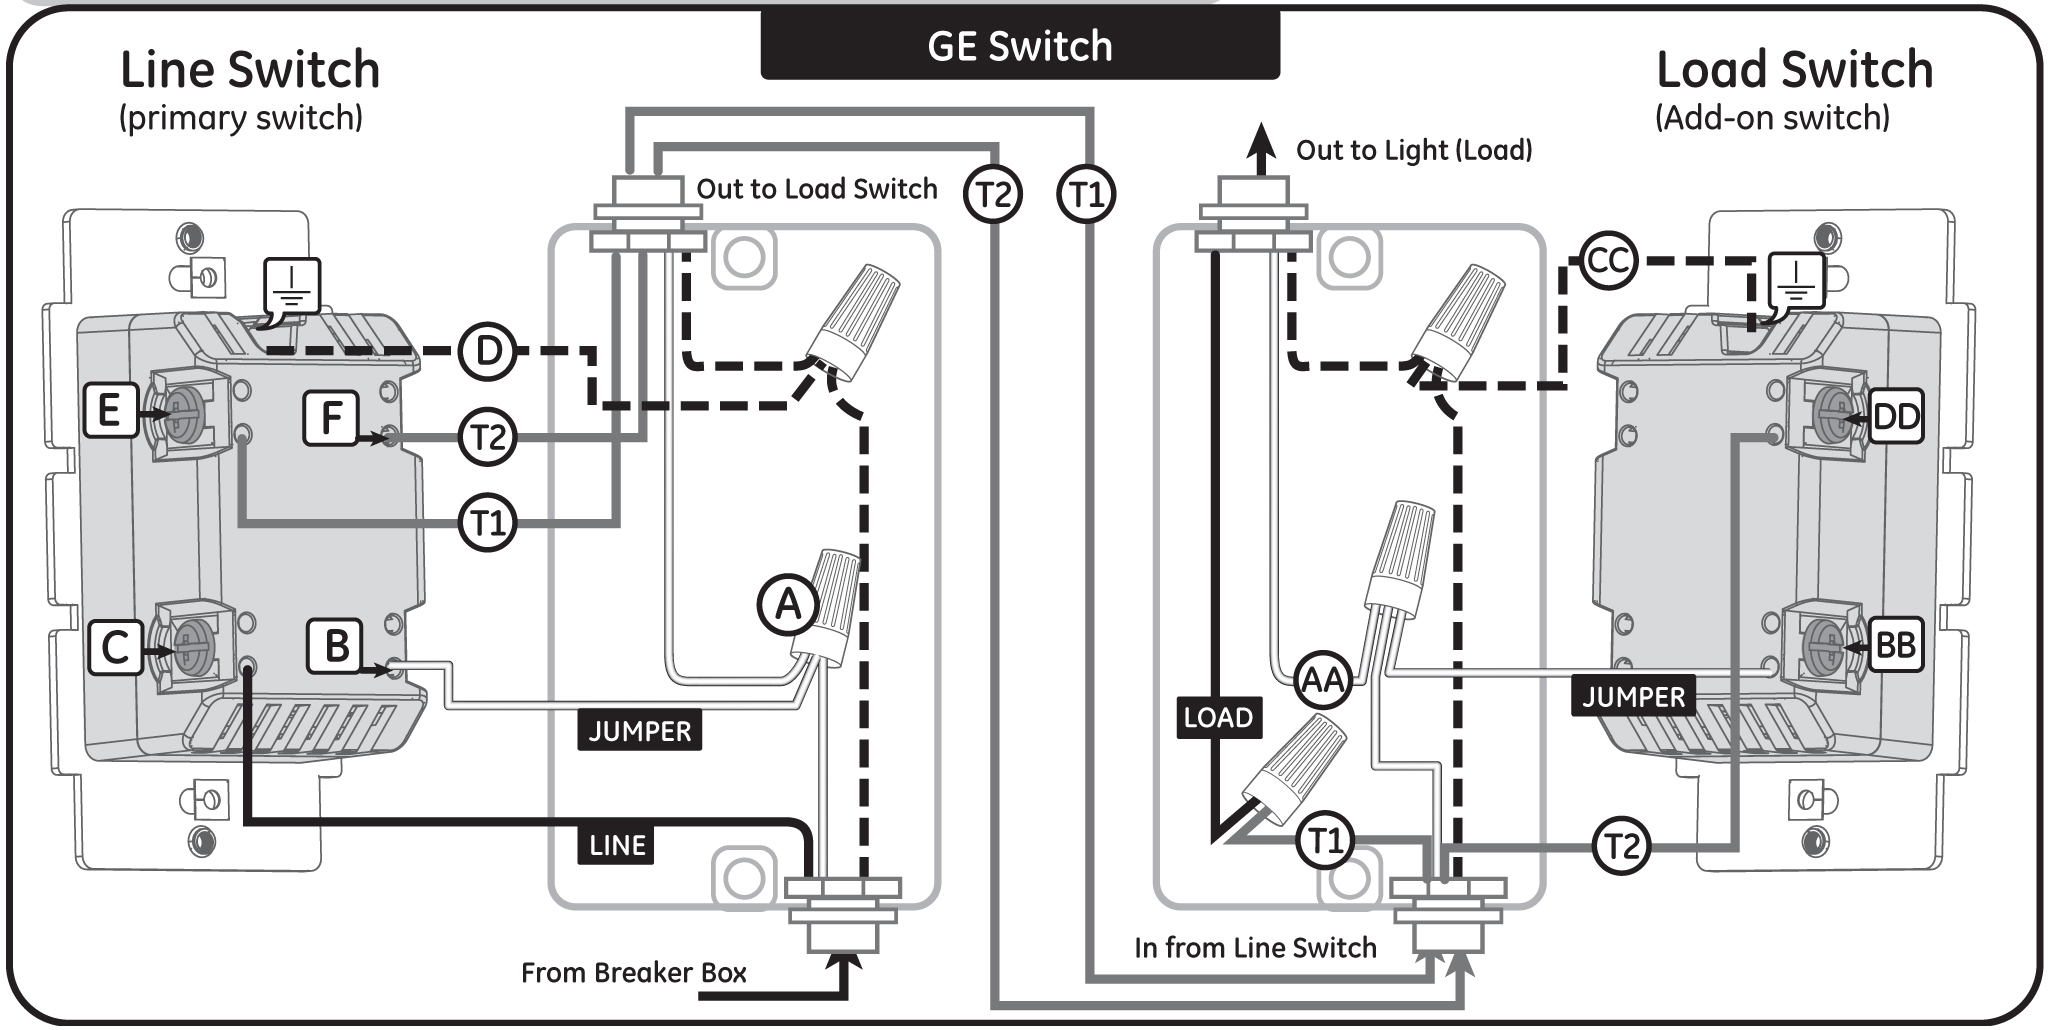 Leviton 4 Way Switch Wiring Diagram | Free Wiring Diagram on standard light switch wiring diagram, 1-way light switch wiring diagram, 3 wire light switch wiring diagram, 4 way light switch operation, 4 way motion sensor light switch, 3 pole light switch wiring diagram, 4-way circuit diagram, brake light switch wiring diagram, four way switch diagram, 3 way switch diagram, 4 way light wire diagram, single light switch wiring diagram, 4 wire switch diagram, two way light switch diagram,